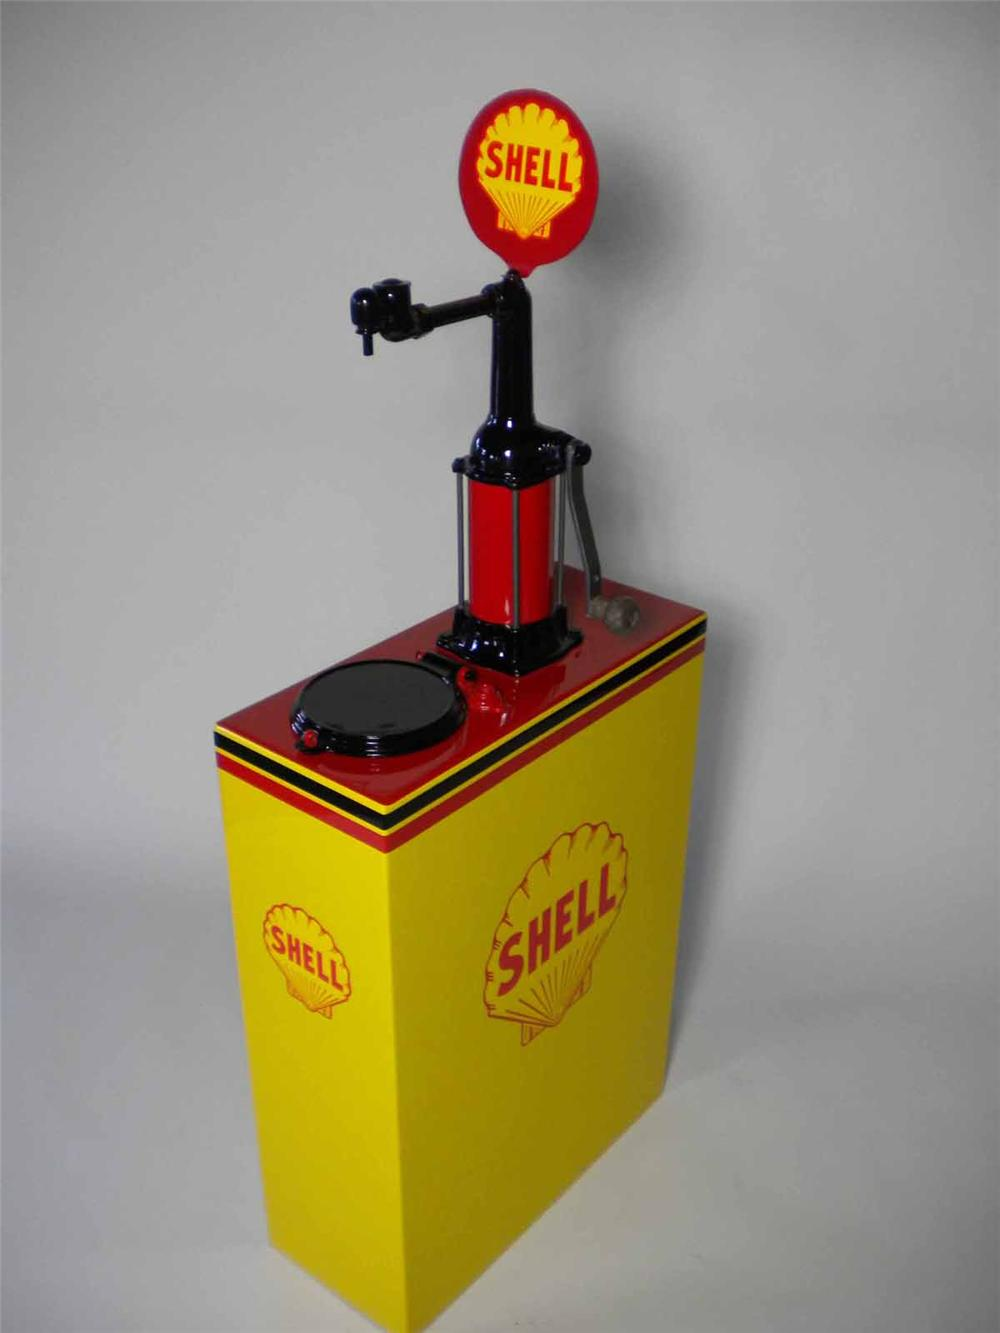 Marvelous 1930s Shell Oil 30 gallon restored service station hand crank oil lubester with marquee sign. - Front 3/4 - 108512